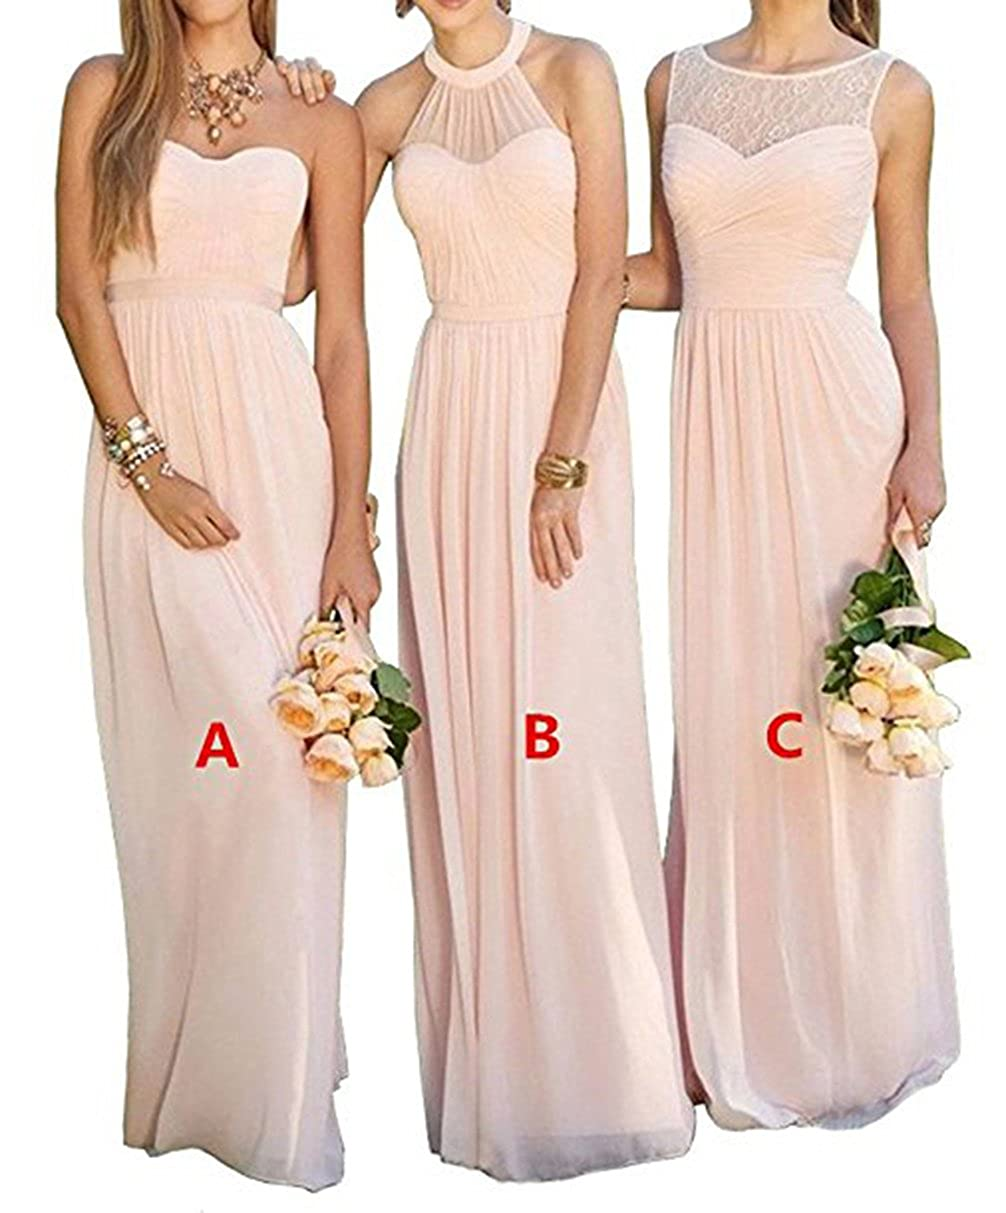 2dab579ac53 Material  Soft Chiffon. Custom made is available. If you need other color  in our color chart pictures